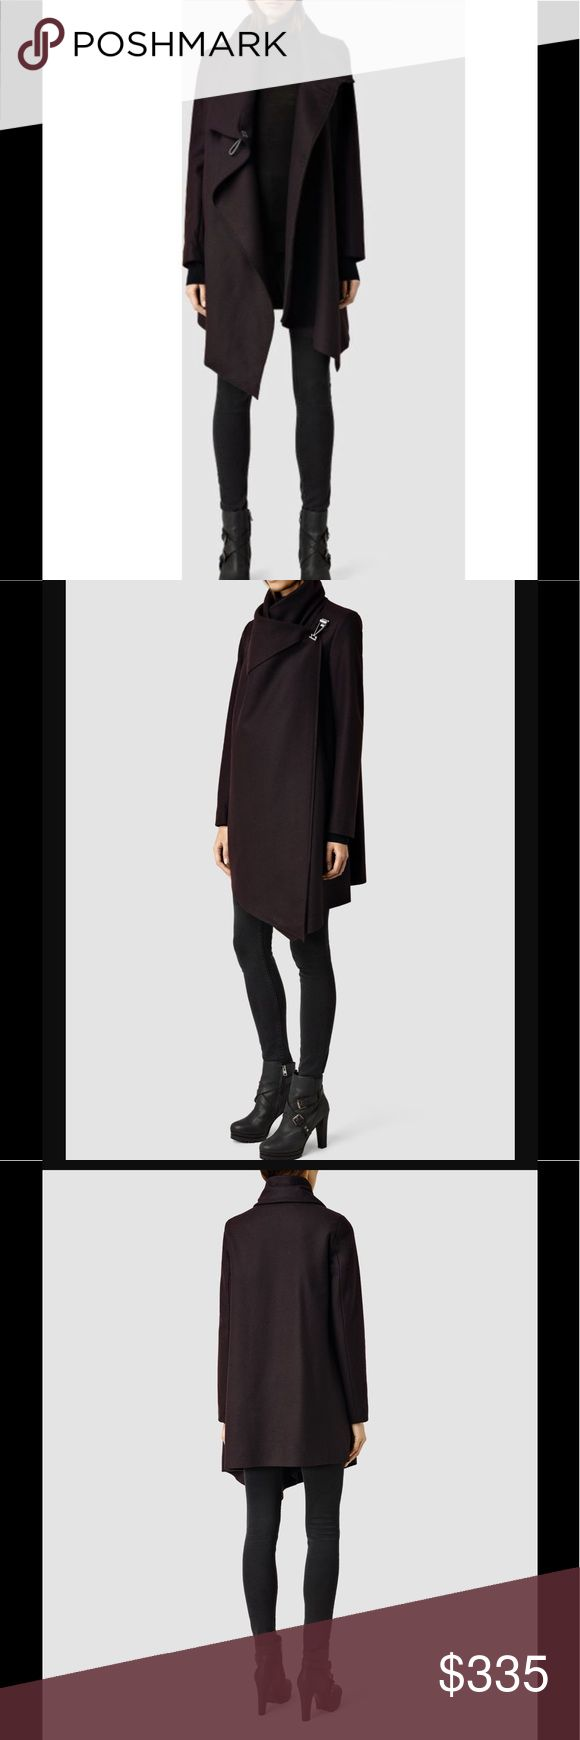 All Saints City Monument coat oxblood US 00 4 This iconic All Saints Spitalfields crafted from Italian wool is the ultimate chic fall and winter coat. The shape is modern and cool but still classic enough to wear through the cold season. The quality wool is tightly woven to keep out the cold but made from a lightweight Italian wool which allows for enough drape for a flattering fit, hook finish and the swingy cut which will allow for a range of sizing. Subtle slash pockets and interior…